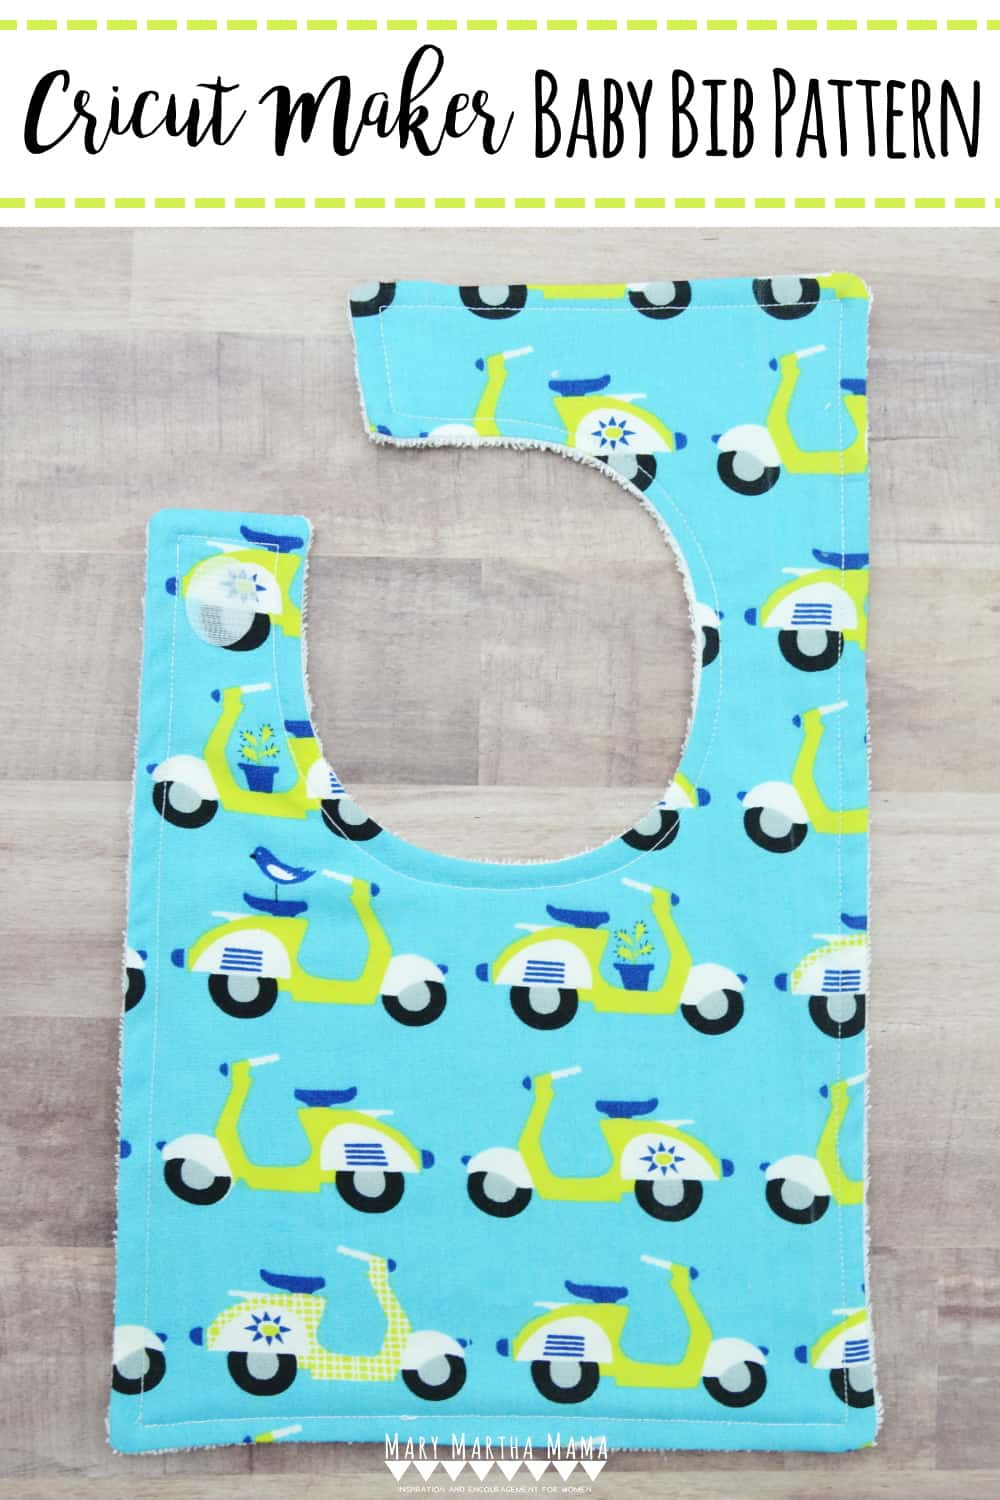 Use this baby bib pattern for the Cricut Maker to easily cut out fabric to make baby bibs in no time at all!  Includes full tutorial with pictures.